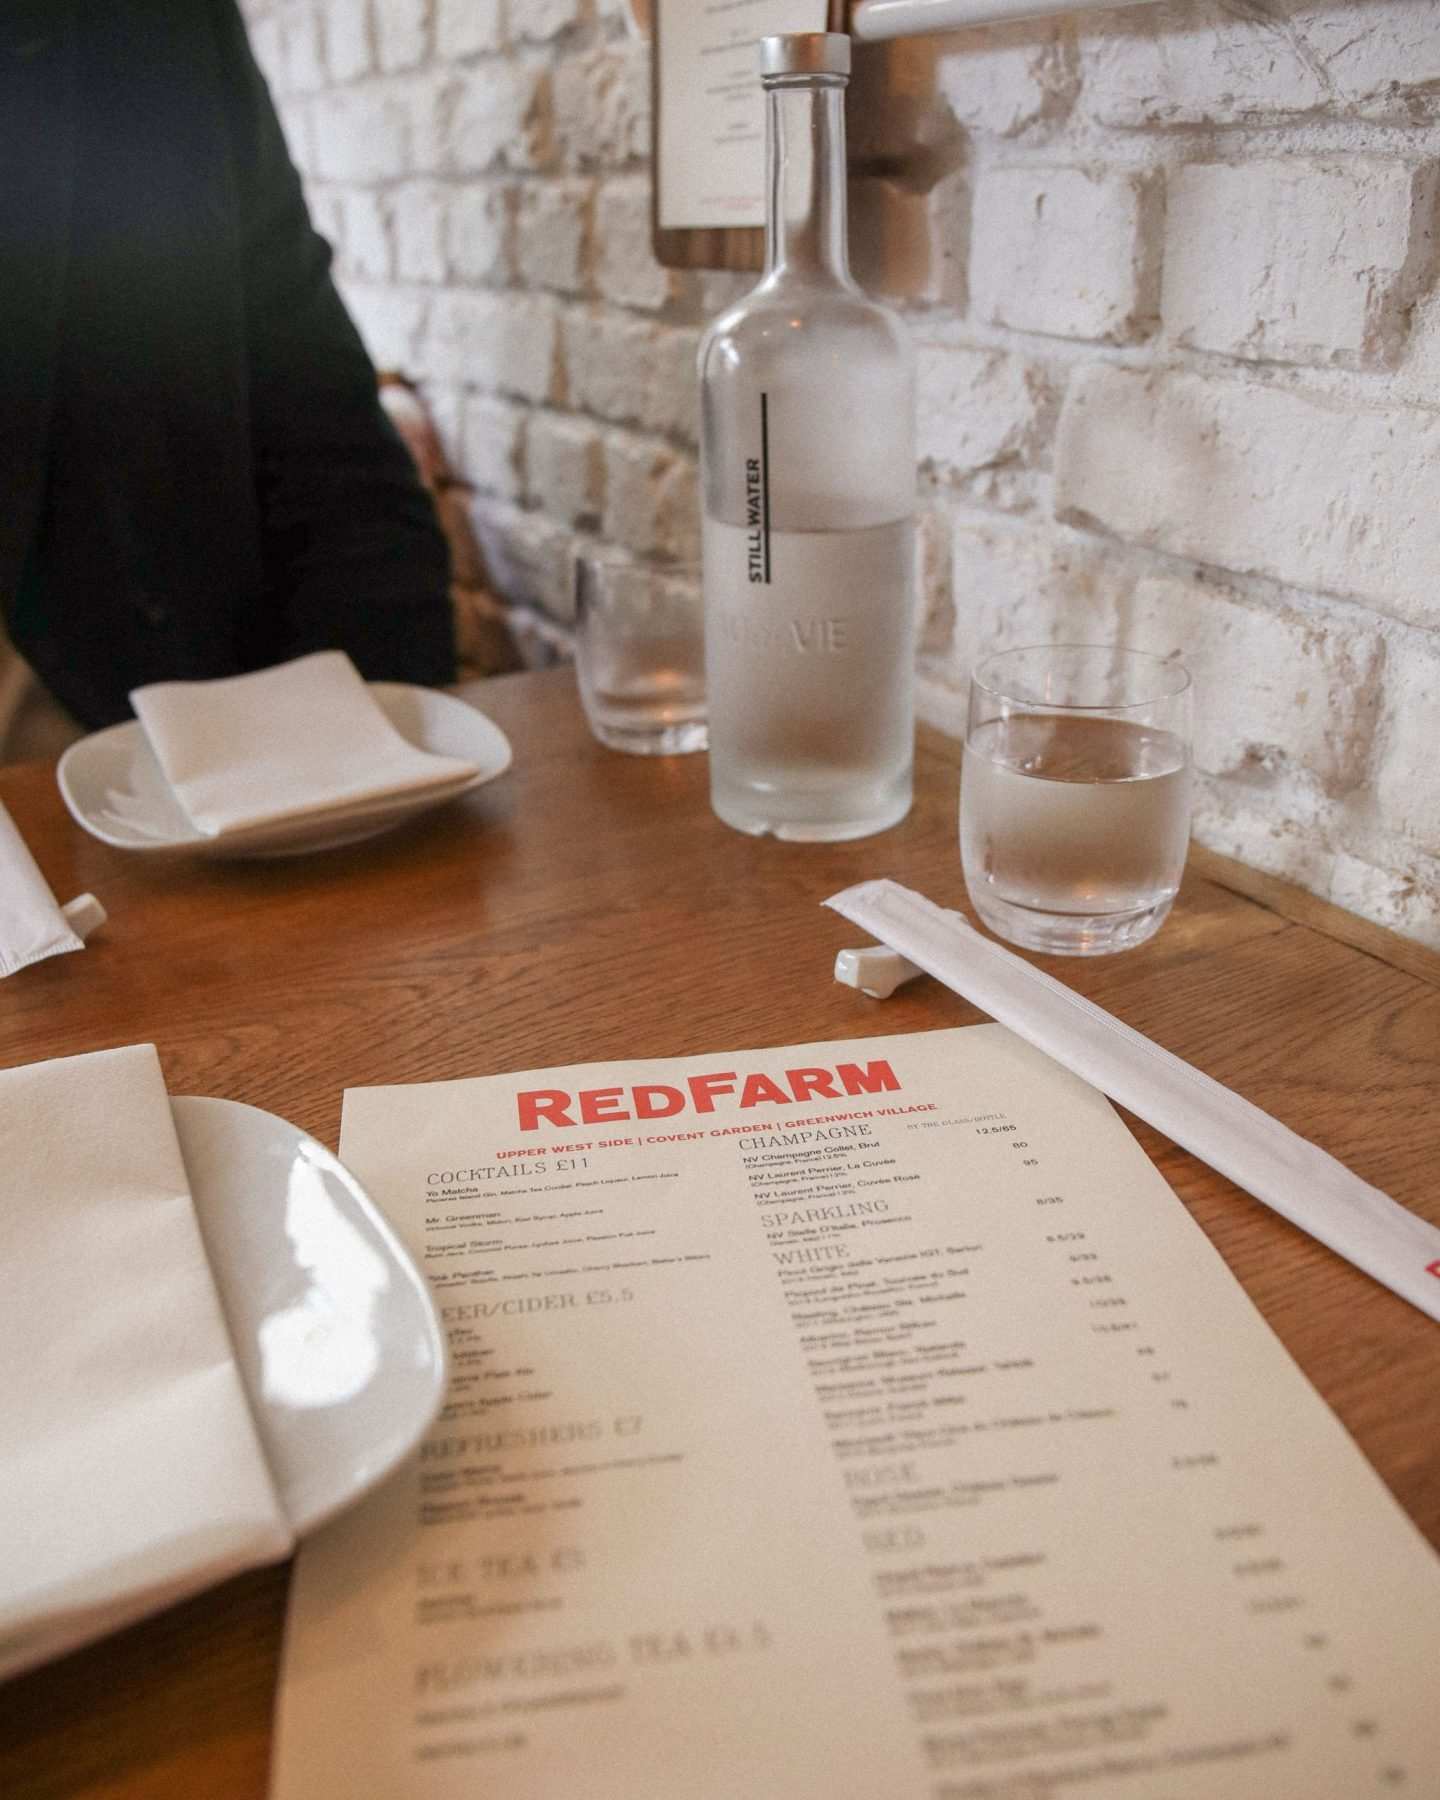 RedFarm London, Covent Garden, Katie Heath KALANCHOE